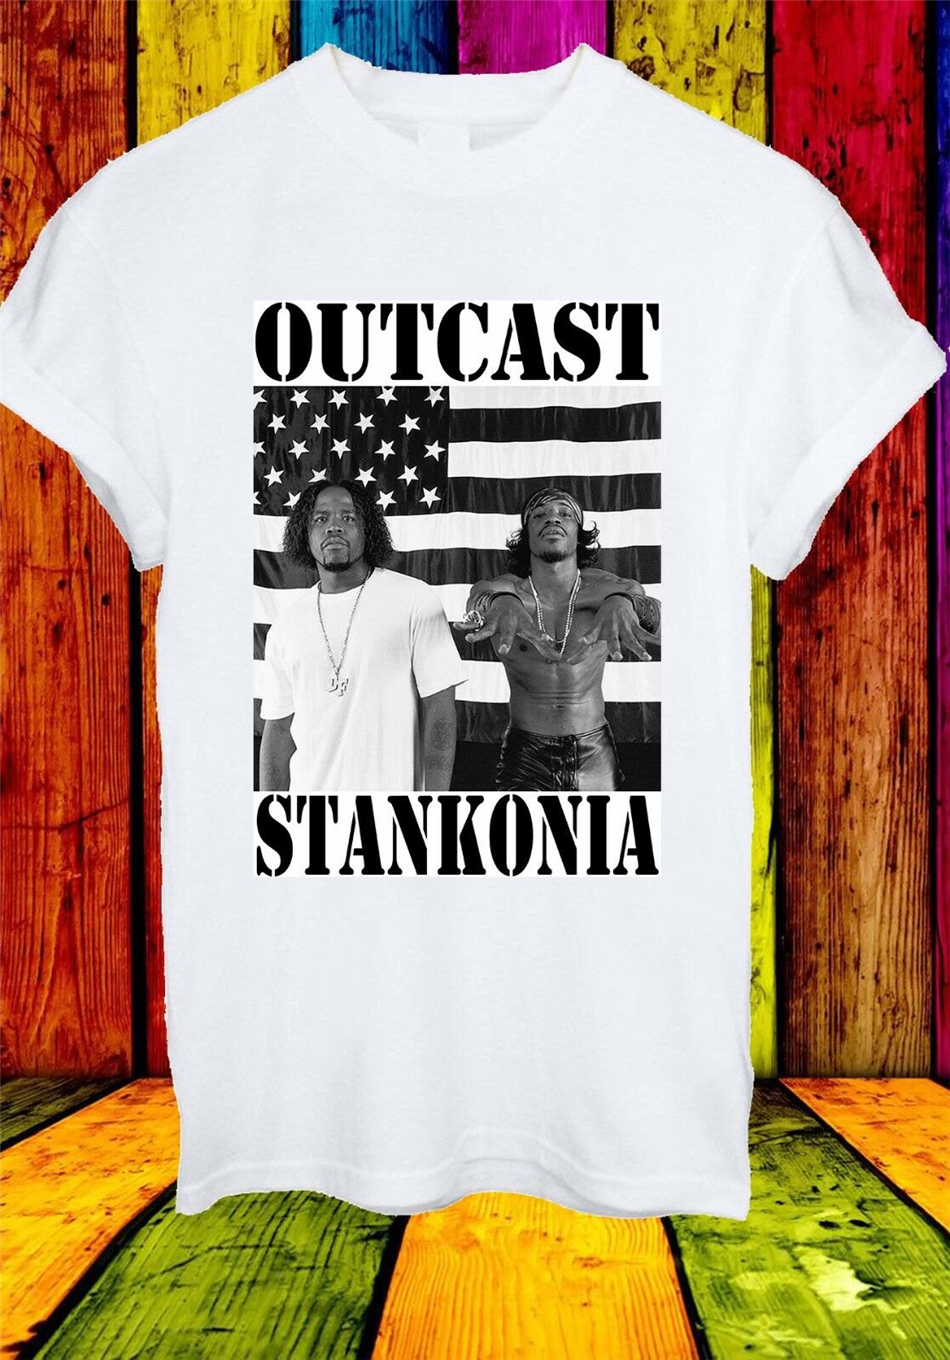 Outkast Stankonia Album Cover American Hip Hop Rap Men Women Unisex T-Shirt 733 High Quality Casual Printing Tee Shirt image